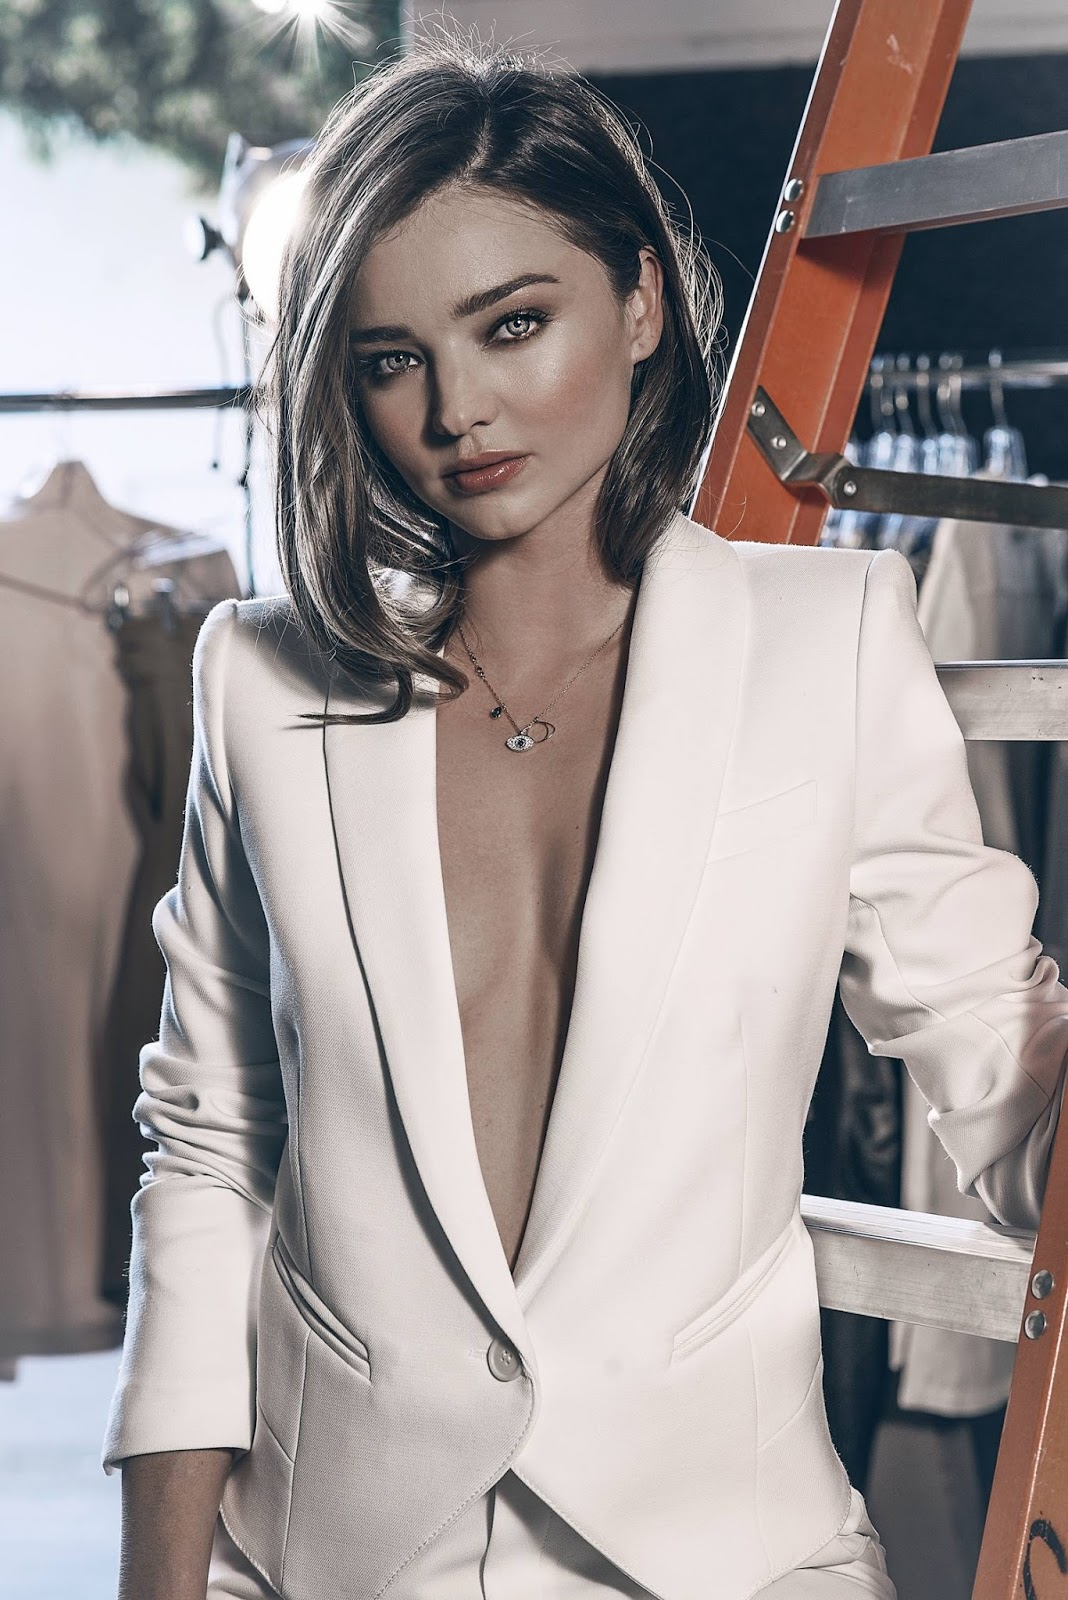 Miranda Kerr S Best Style Looks Ever: Arts Cross Stitch: Fashion Model @ Miranda Kerr For